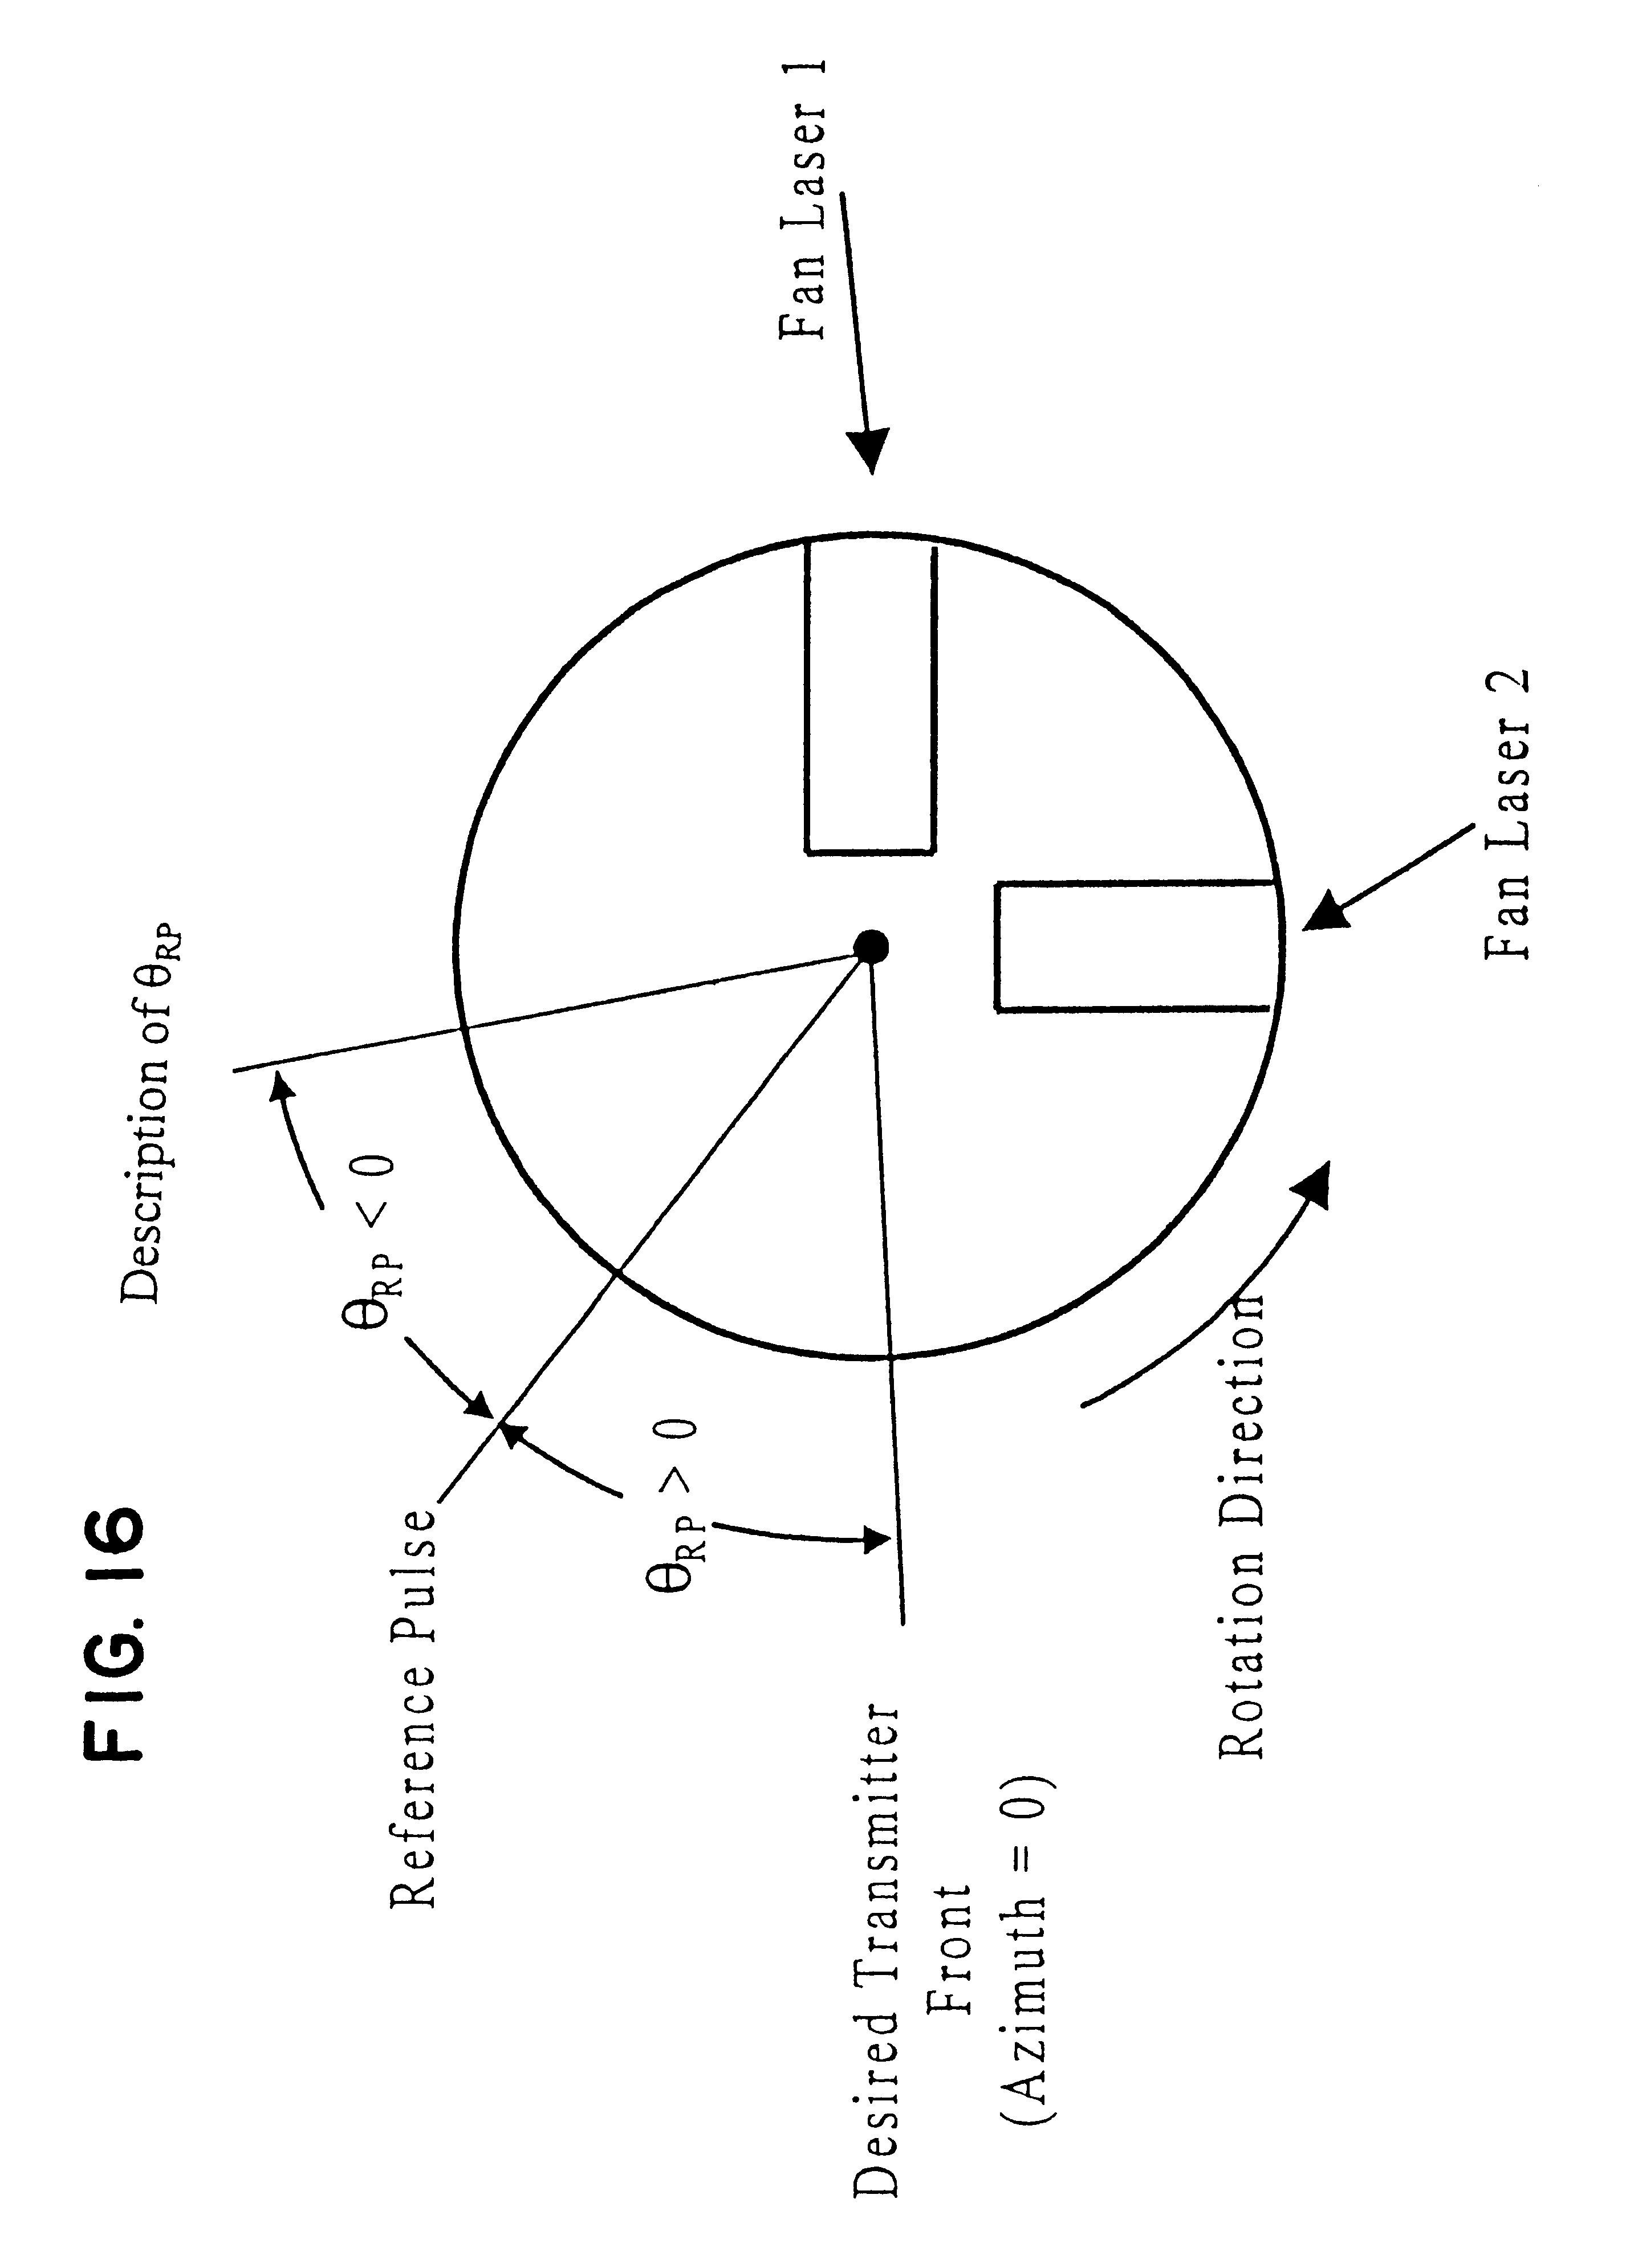 relationship between optical transmitter and receiver